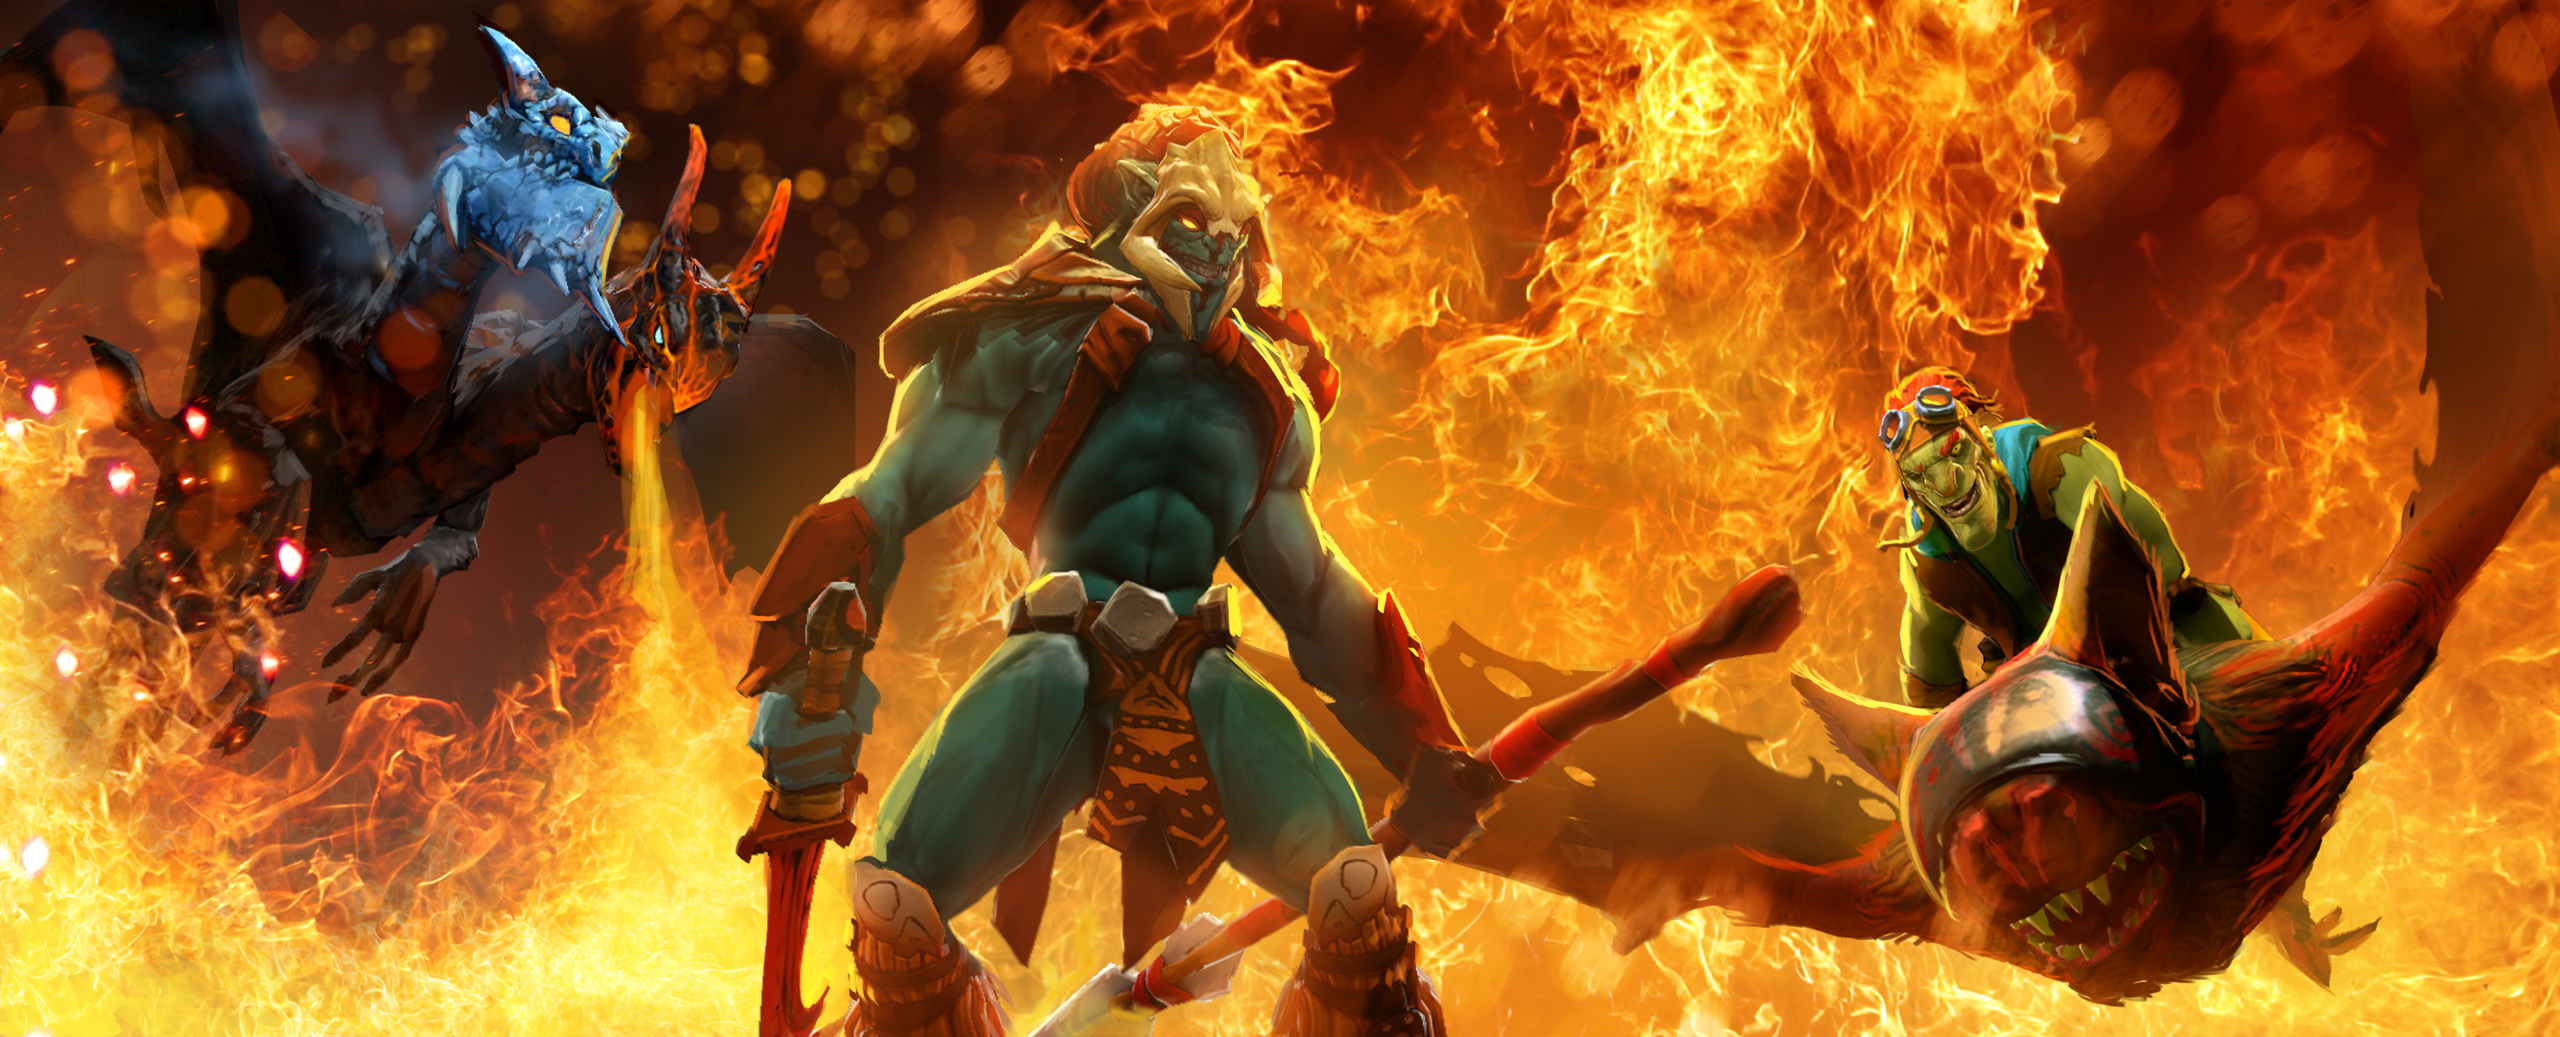 Dota 2 News Dota 2 Welcomes 3 New Heroes And Commendation Feature GosuGamers